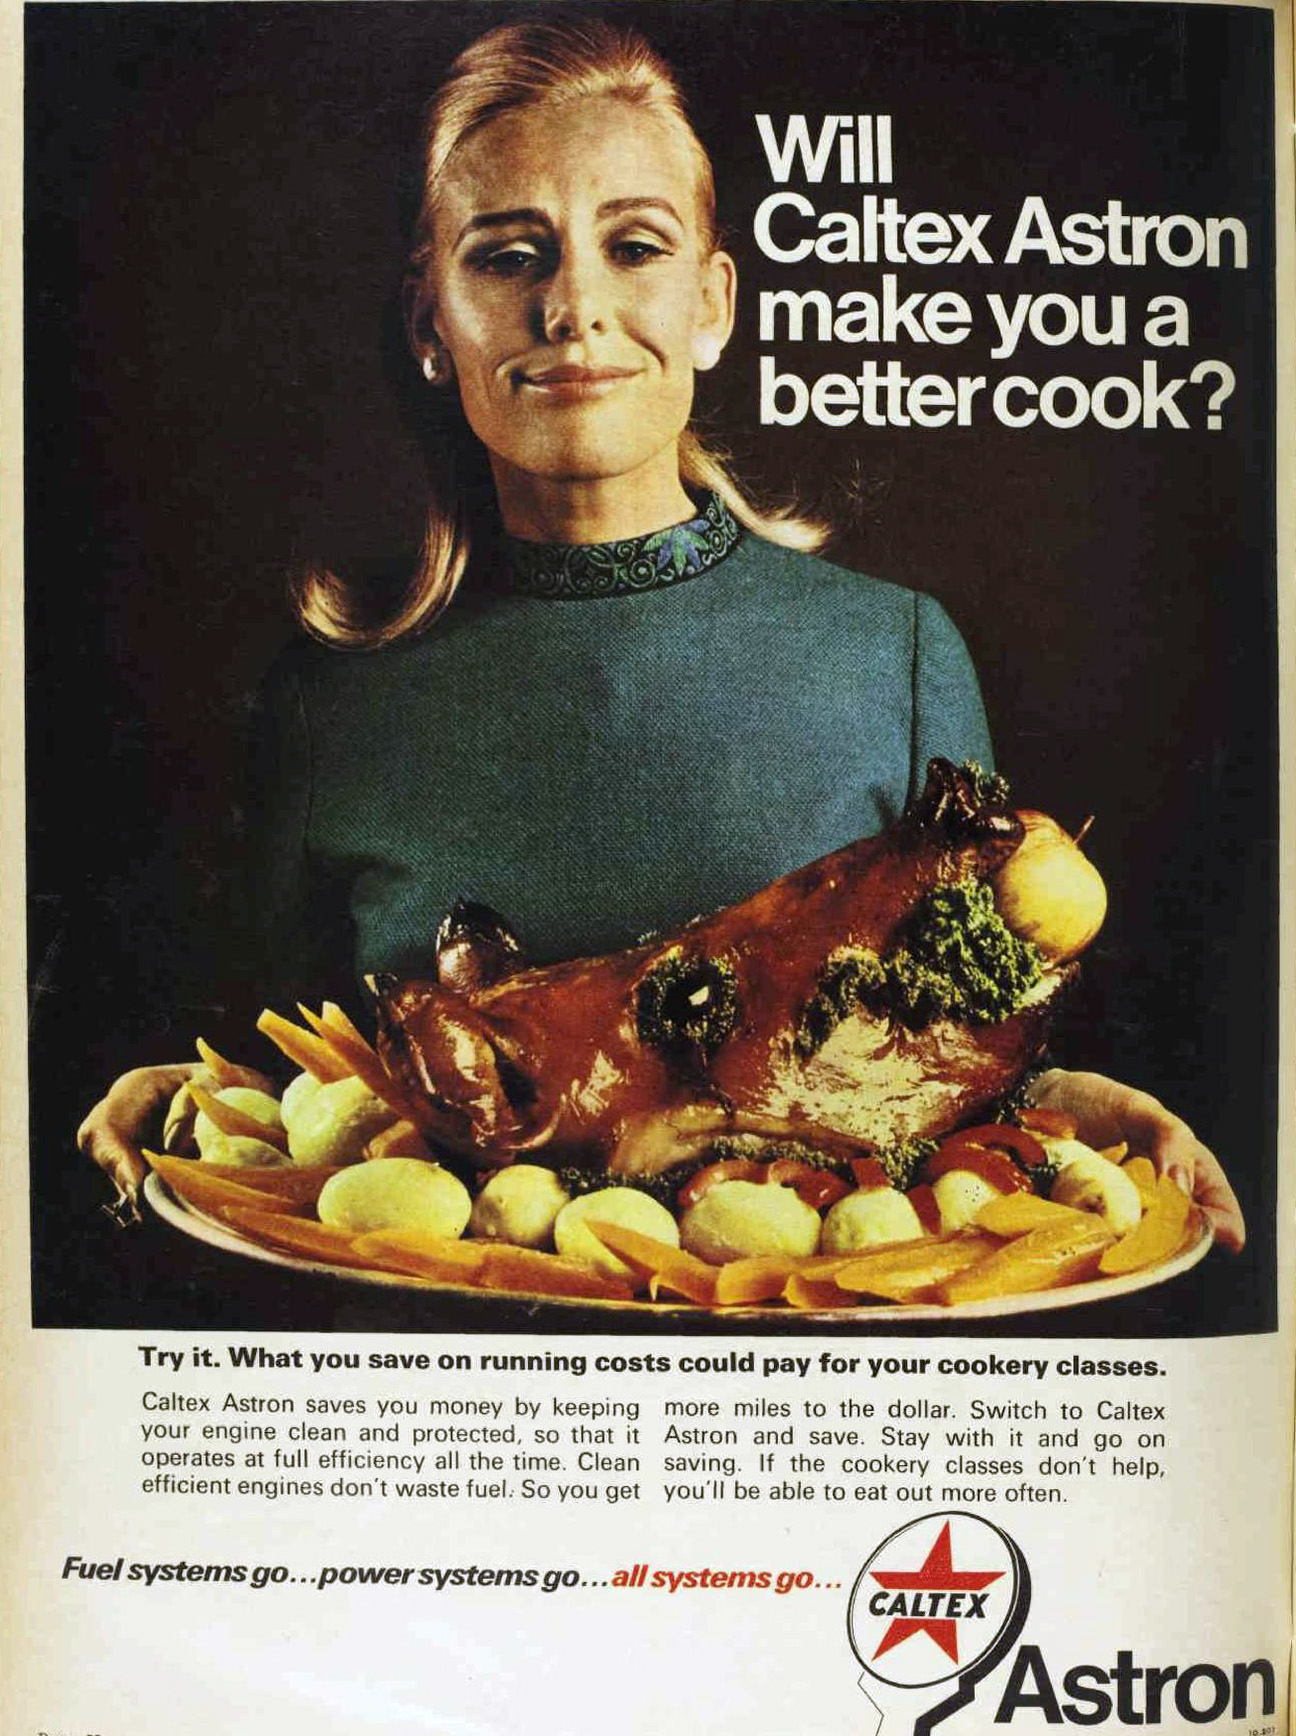 1967-food-advertisement